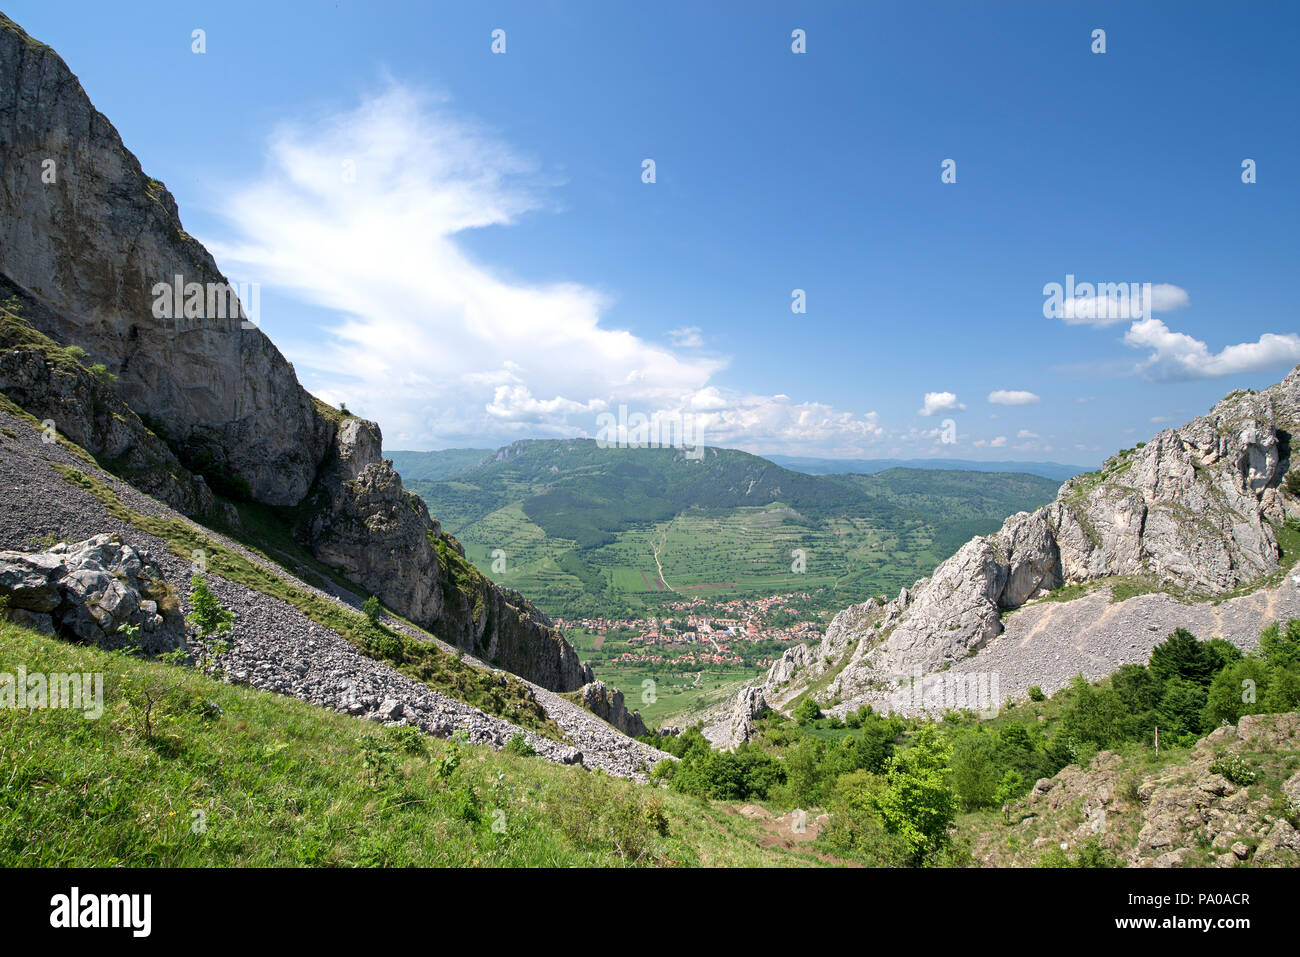 Sunny summer day at mountain peak, where tourists climb to conquer fear, find courage and develop lateral thinking skills to overcome difficulty of cl - Stock Image